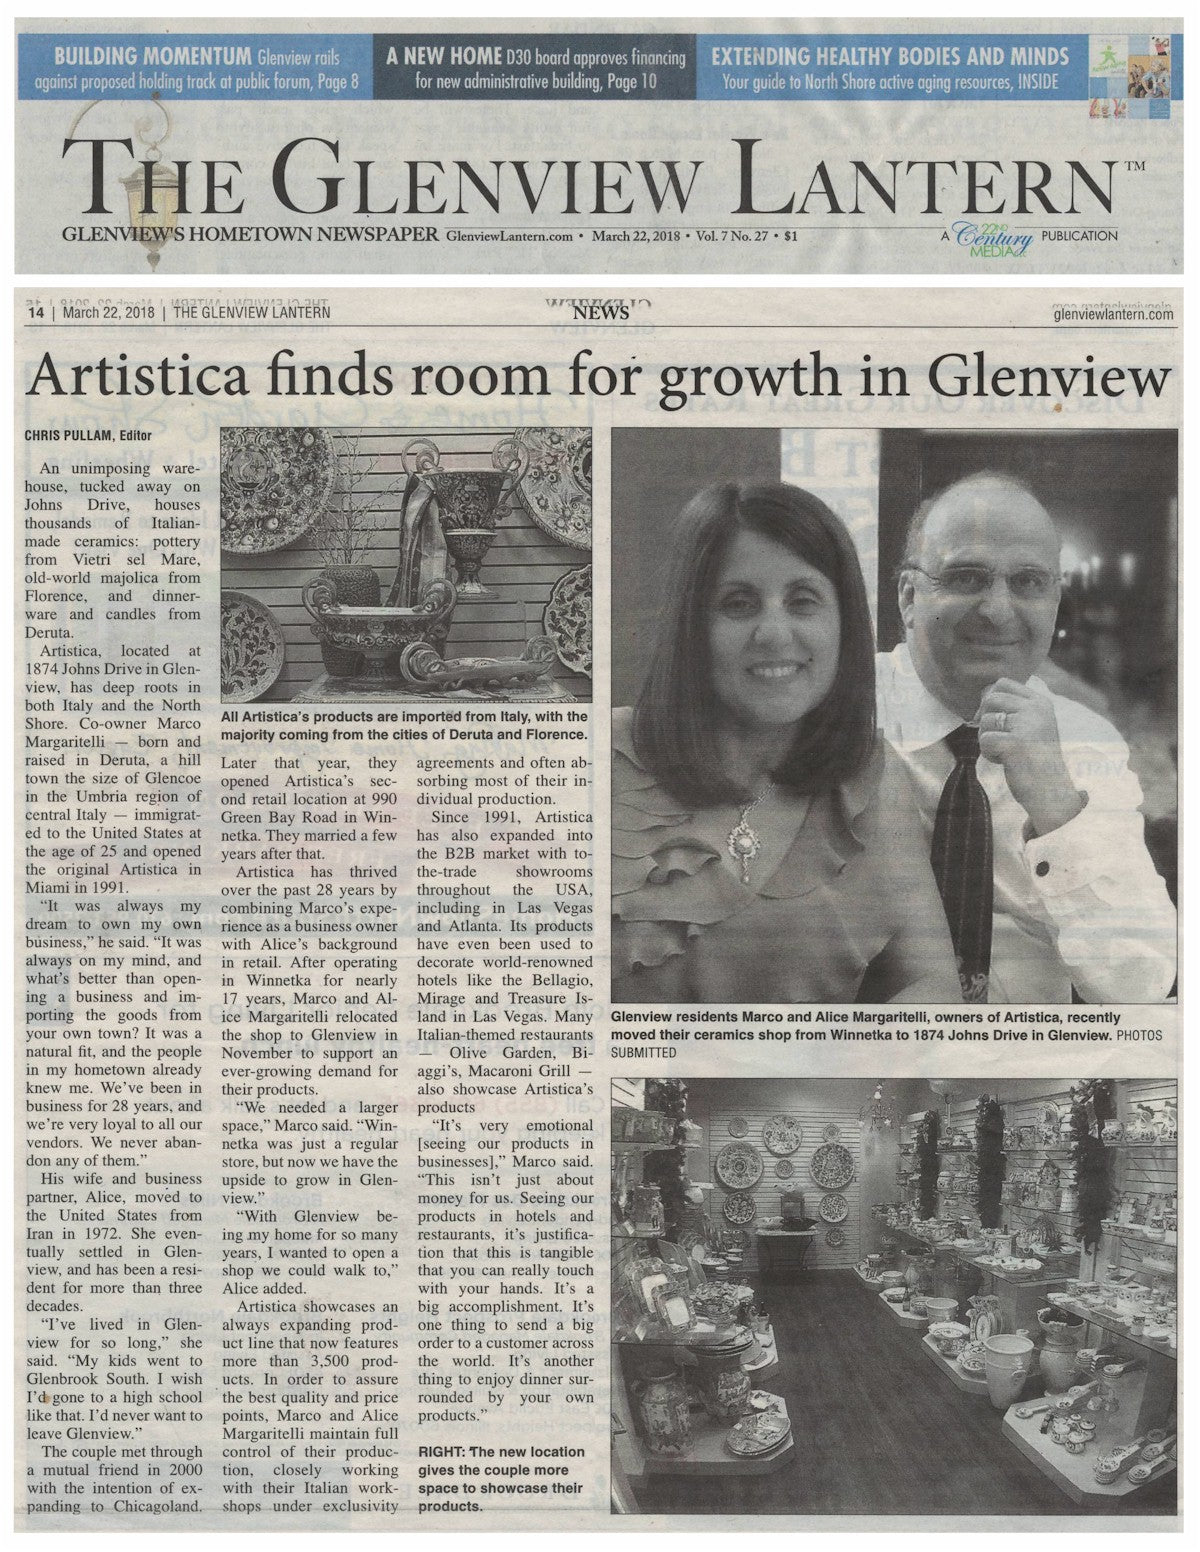 Artistica The Glenview Lantern article March 2018